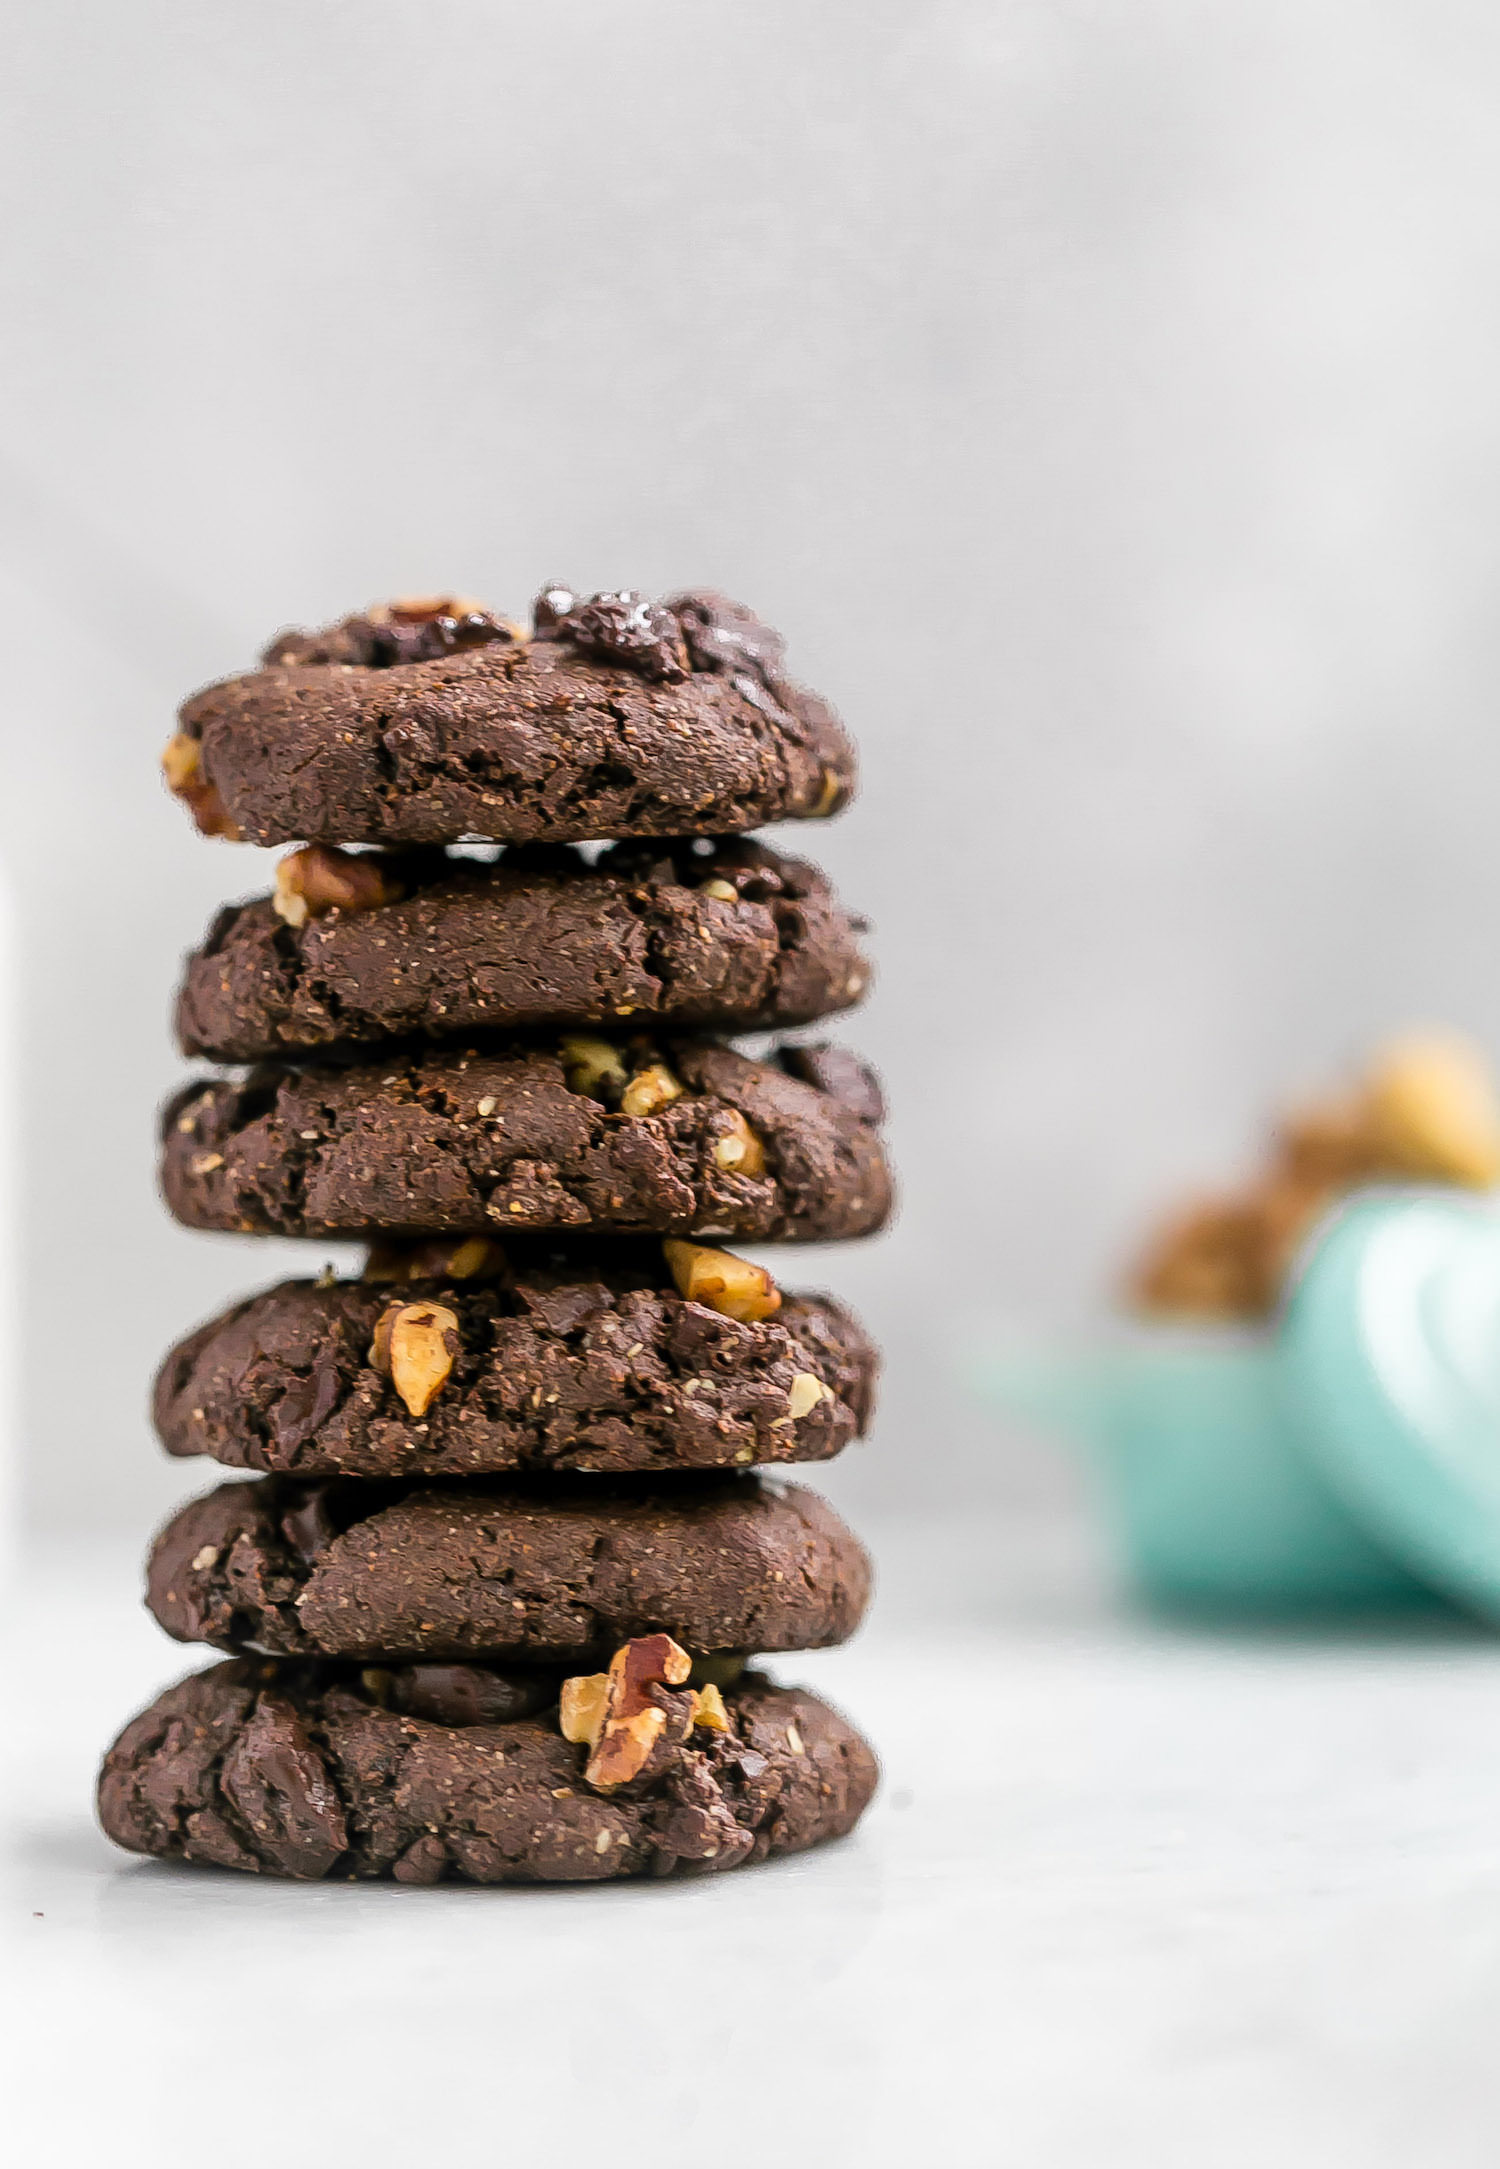 Gluten-Free Double Chocolate Walnut Cookies: chewy, rich, dense cookies full of rich chocolate flavor, melty chocolate chunks, and walnuts. Dairy and refined sugar free! | TrufflesandTrends.com